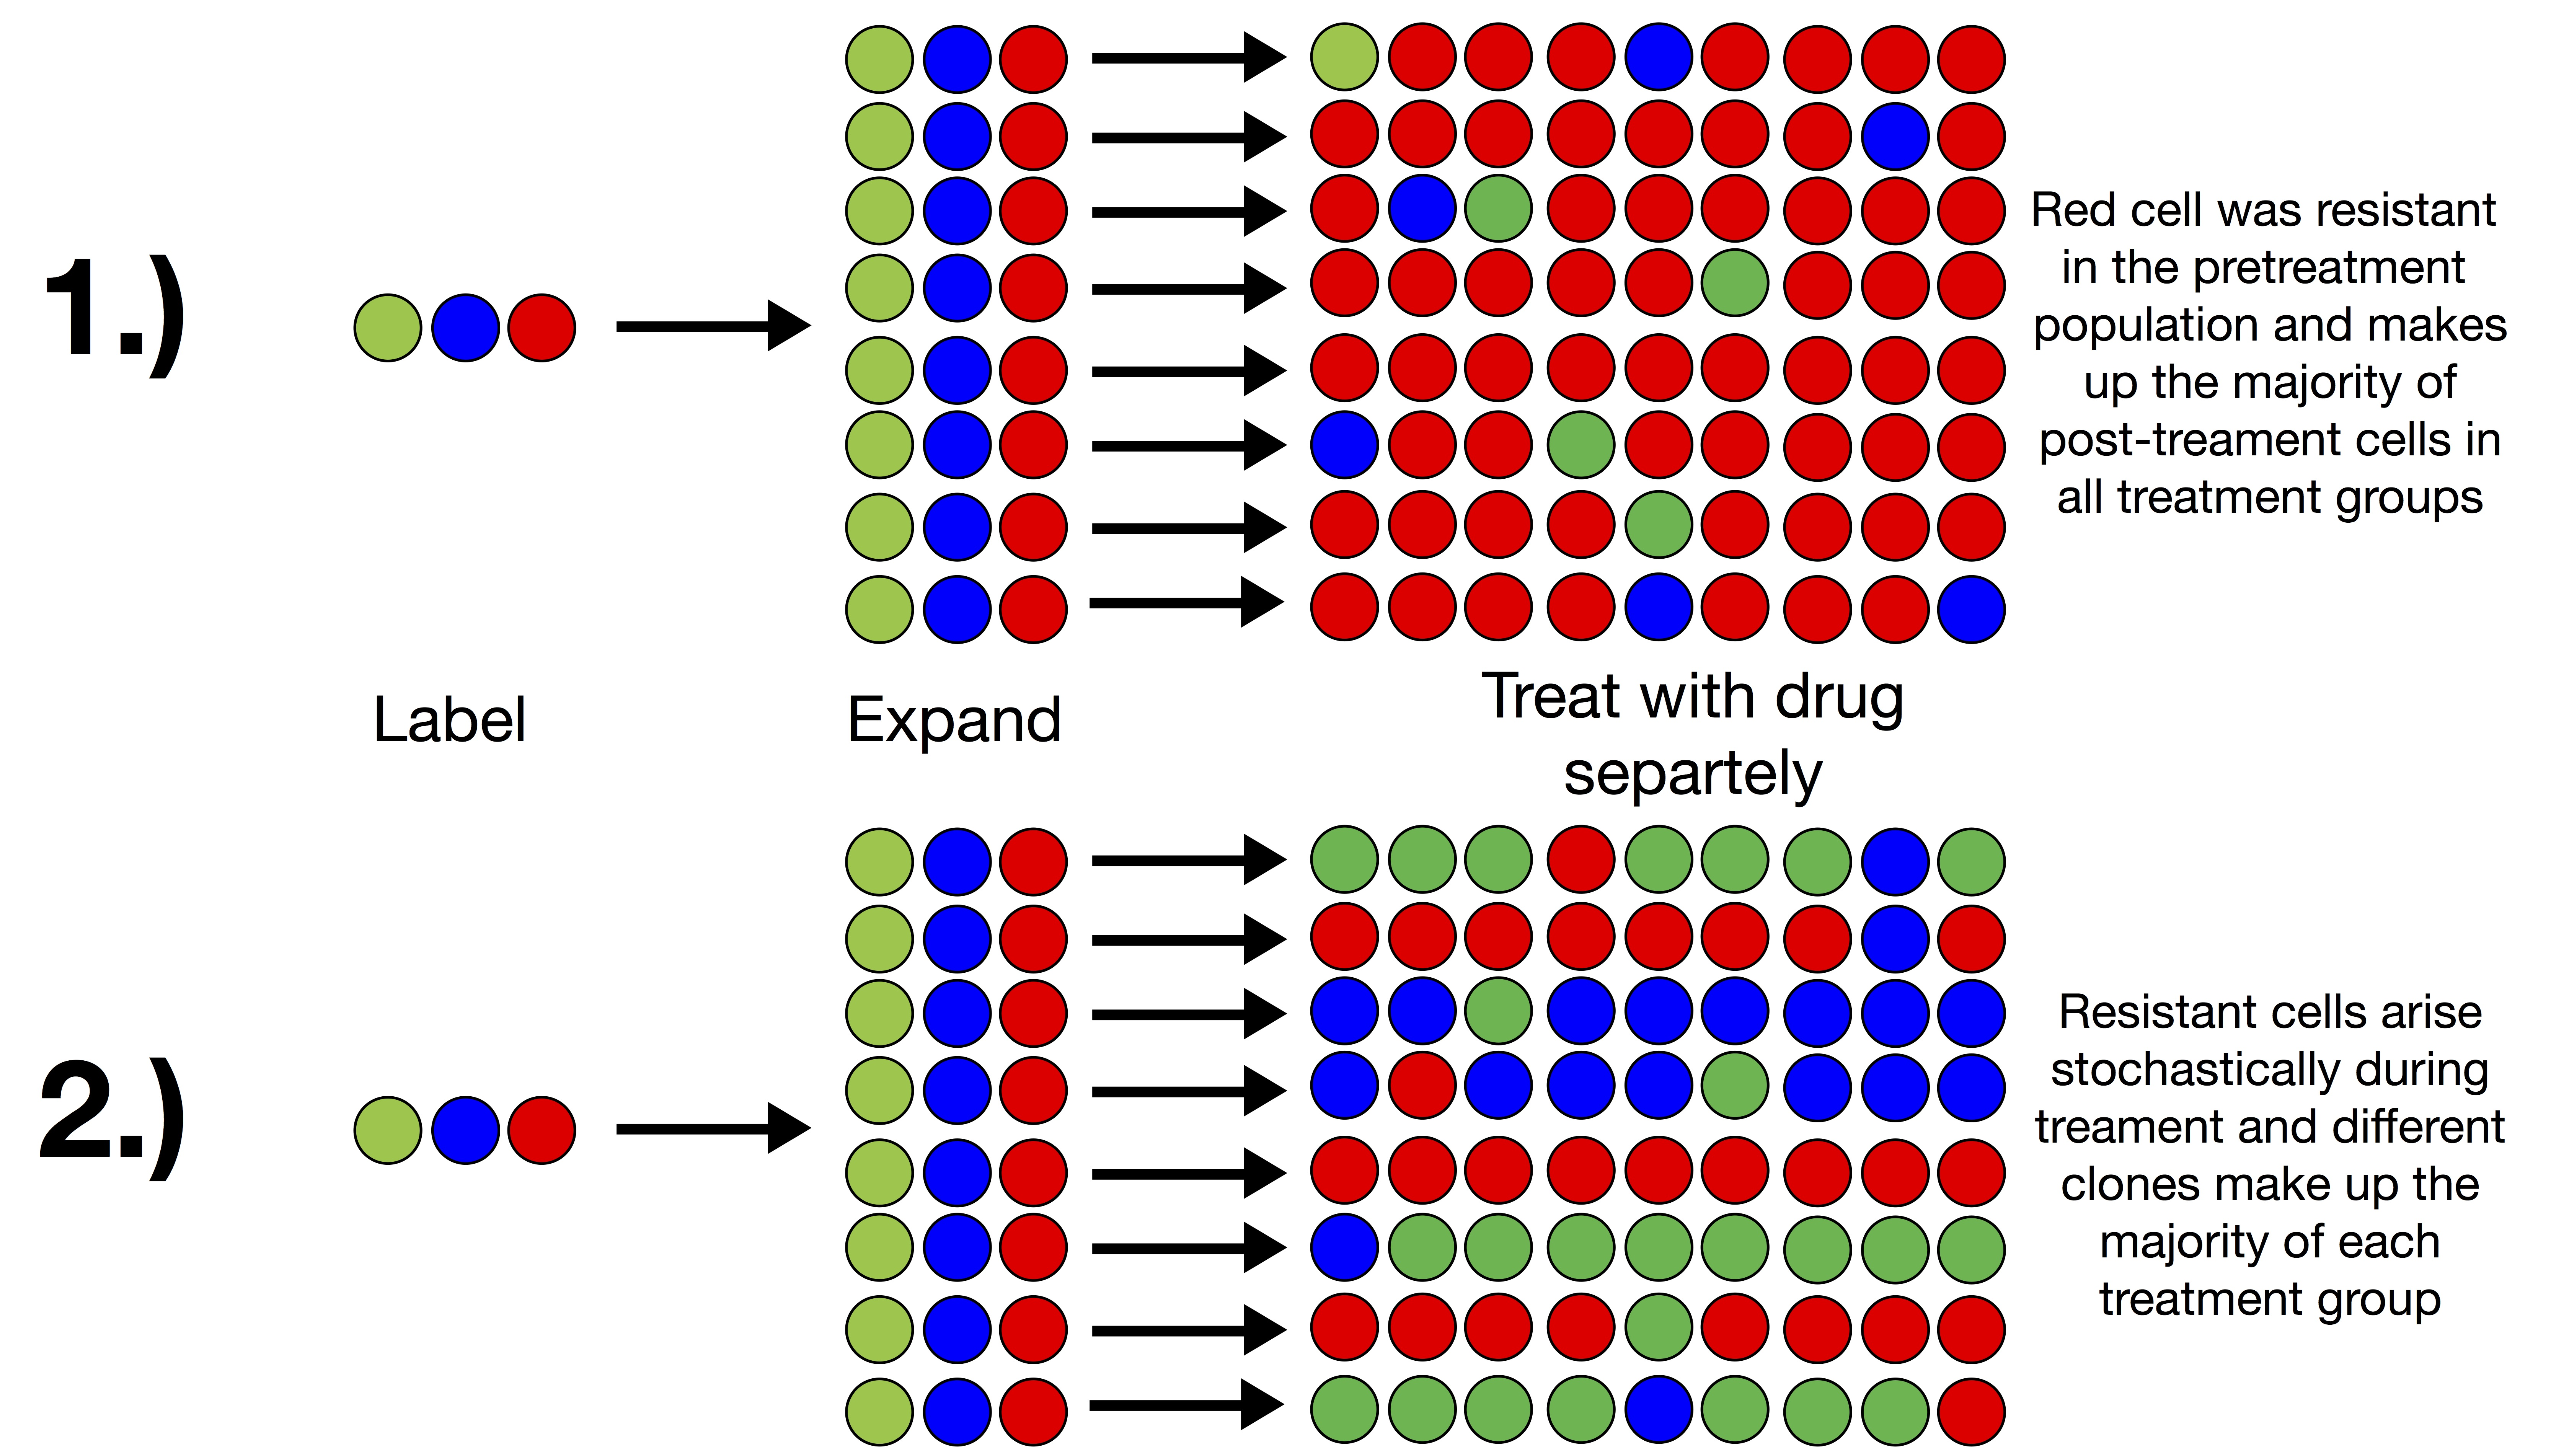 Cancer drug resistance screening outcomes